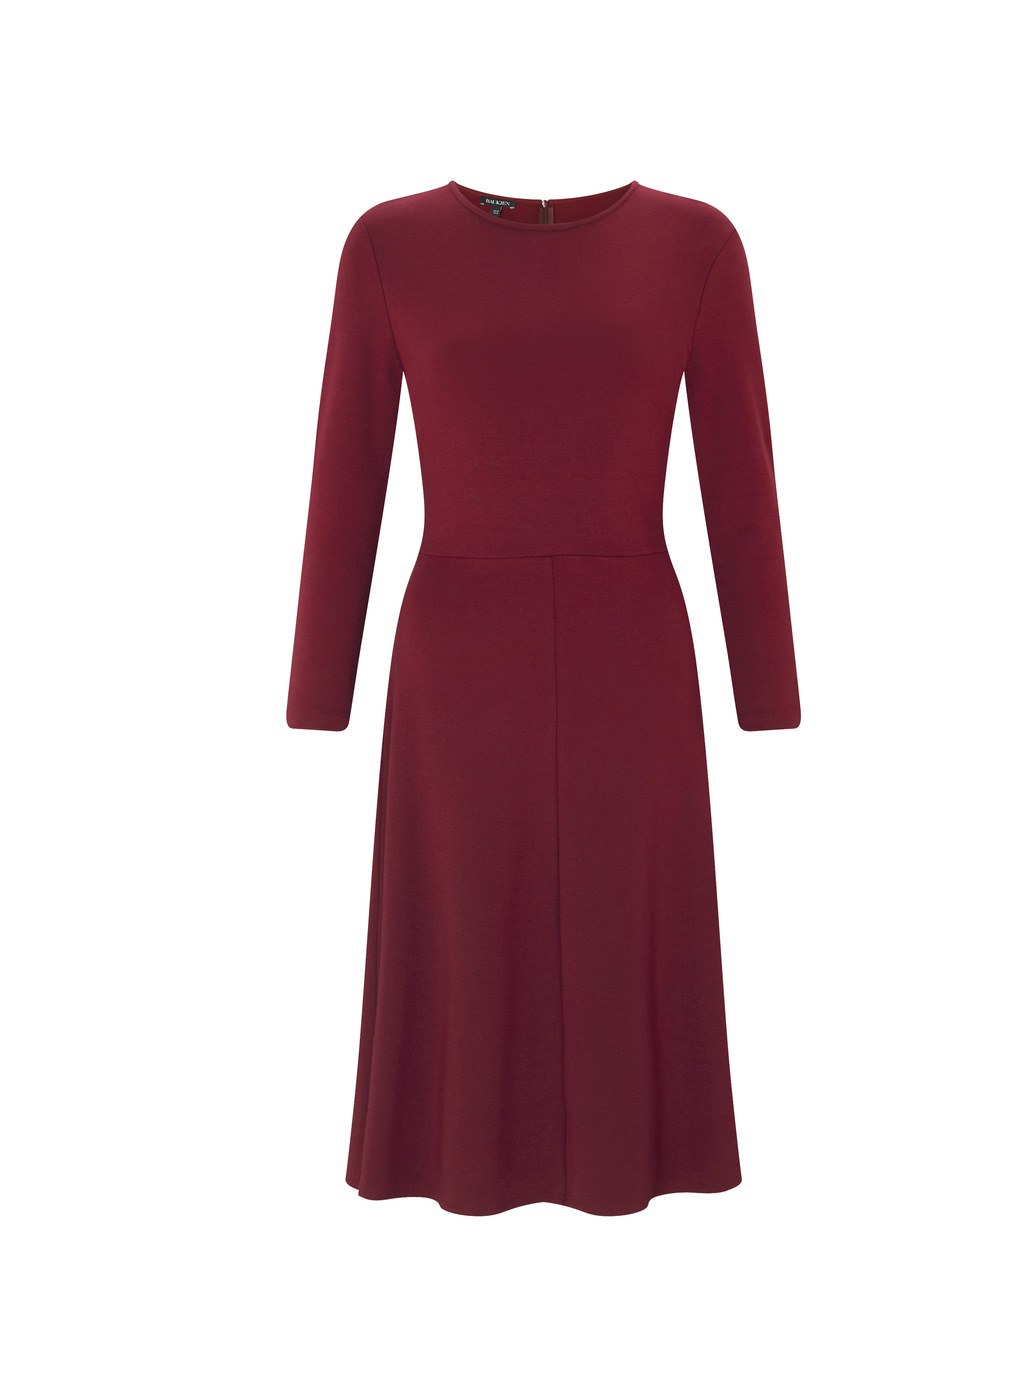 Womenswear Northwood Dress - length: below the knee; pattern: plain; predominant colour: burgundy; occasions: evening; fit: fitted at waist & bust; style: fit & flare; fibres: cotton - stretch; neckline: crew; sleeve length: long sleeve; sleeve style: standard; pattern type: fabric; texture group: jersey - stretchy/drapey; season: a/w 2016